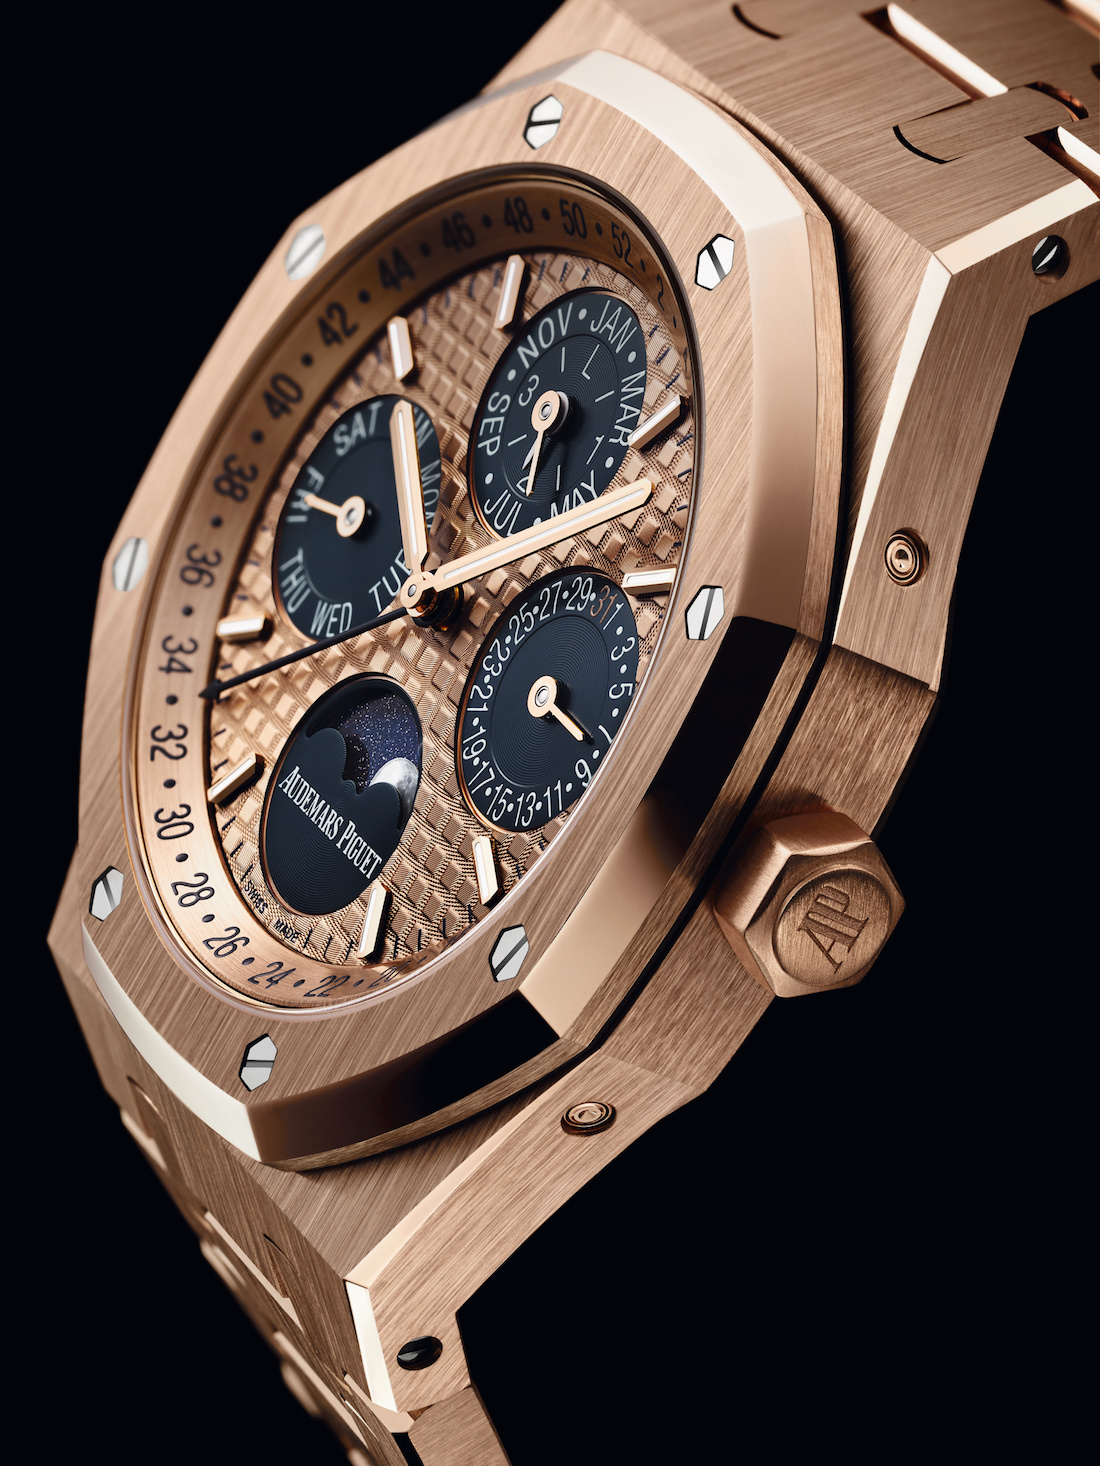 AudemarsPiguetRoyalOakPerpetual26584OR-OO-1220OR-01WCL2